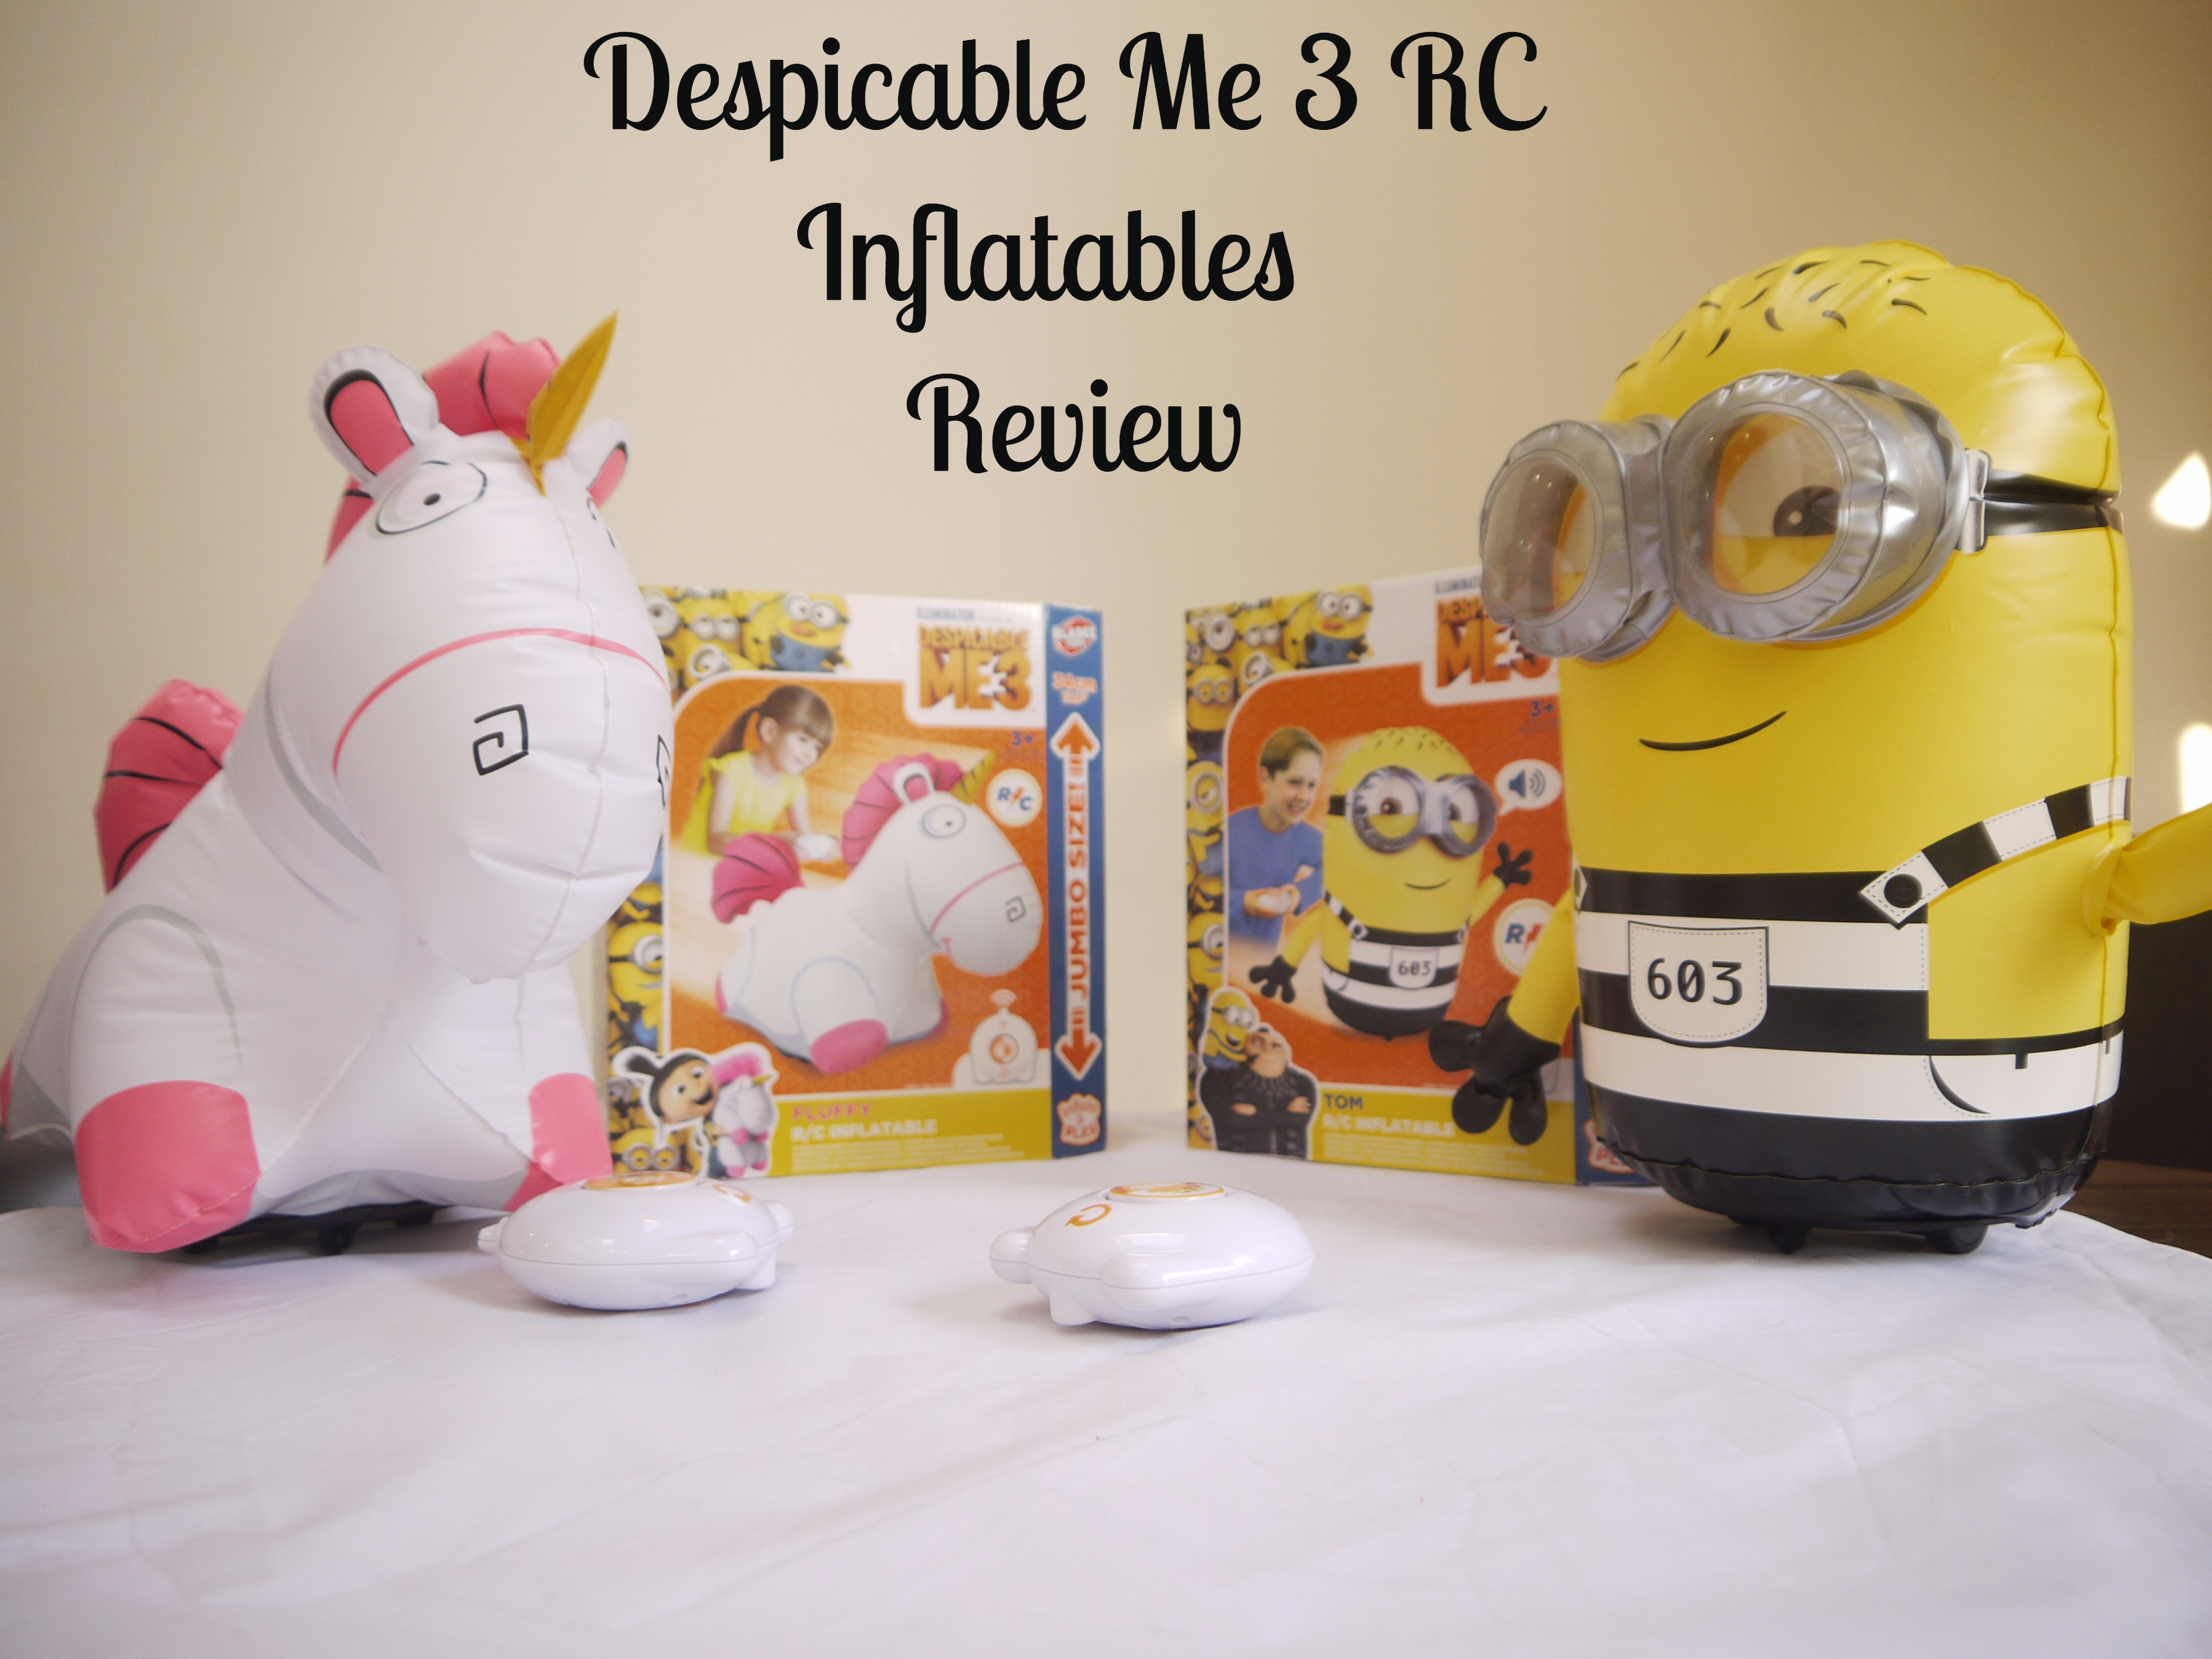 R/C Inflatable Despicable Me 3 Range – Review